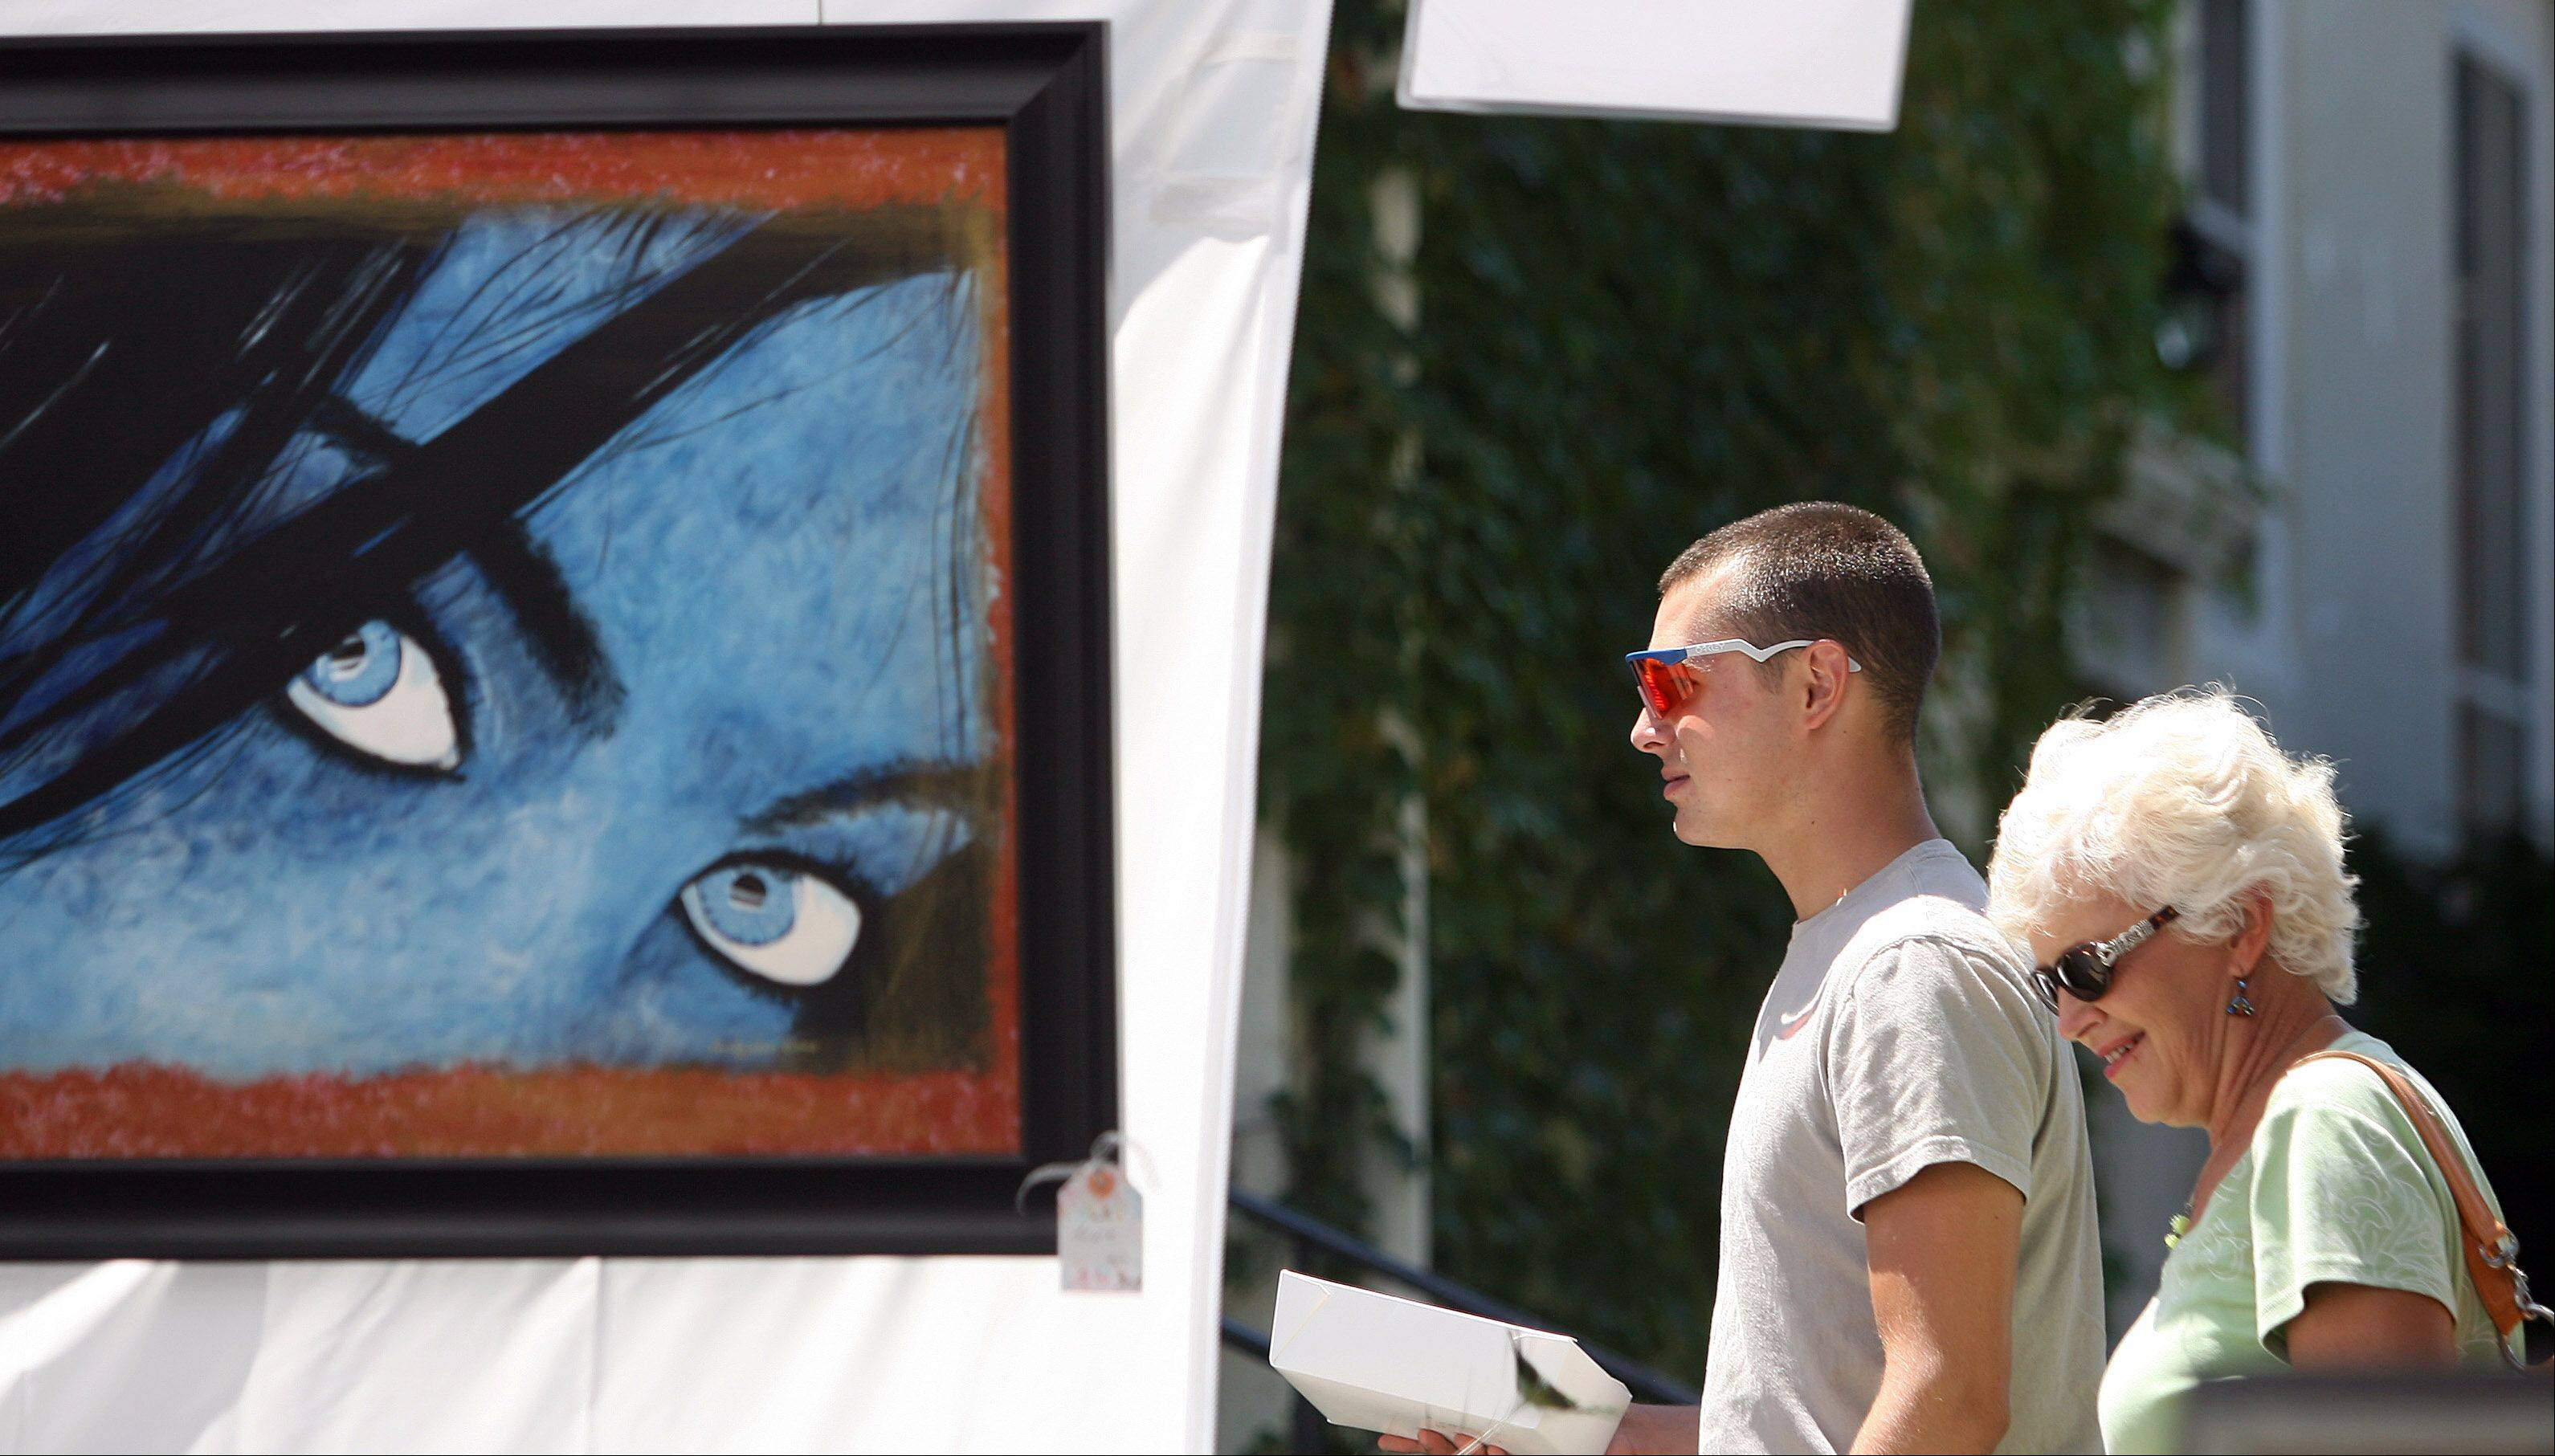 Daily Herald File Photo The 31st annual David Adler Music and Arts Center's Festival of the Arts returns to Cook Park in Libertyville Aug. 6-7.